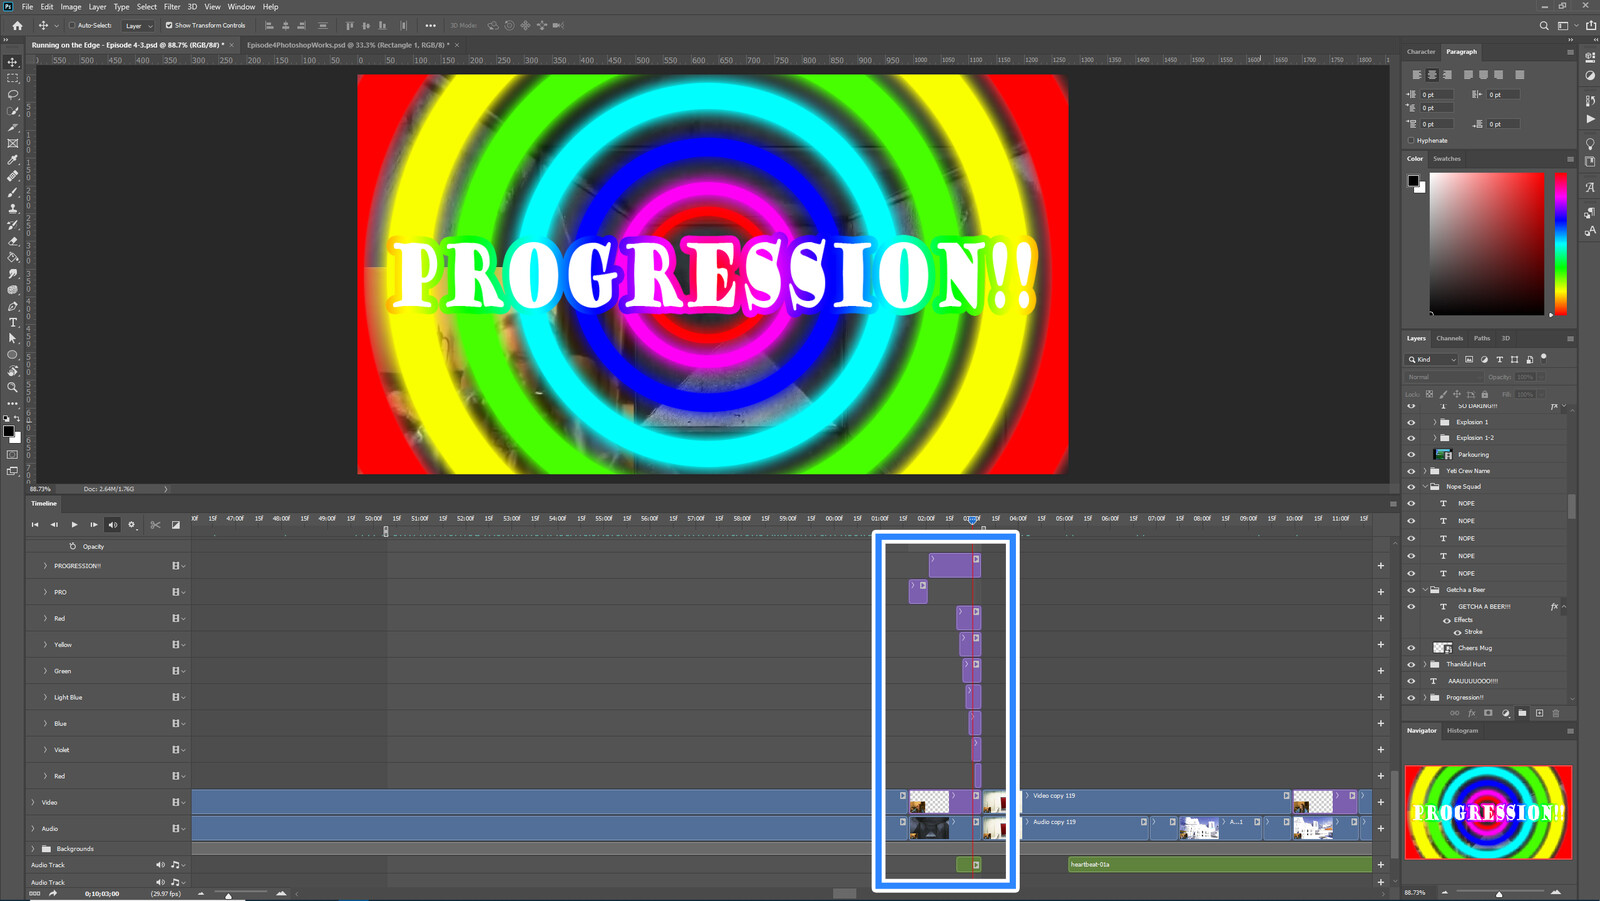 """The """"Progression #1"""" visual effect within Photoshop video editor"""